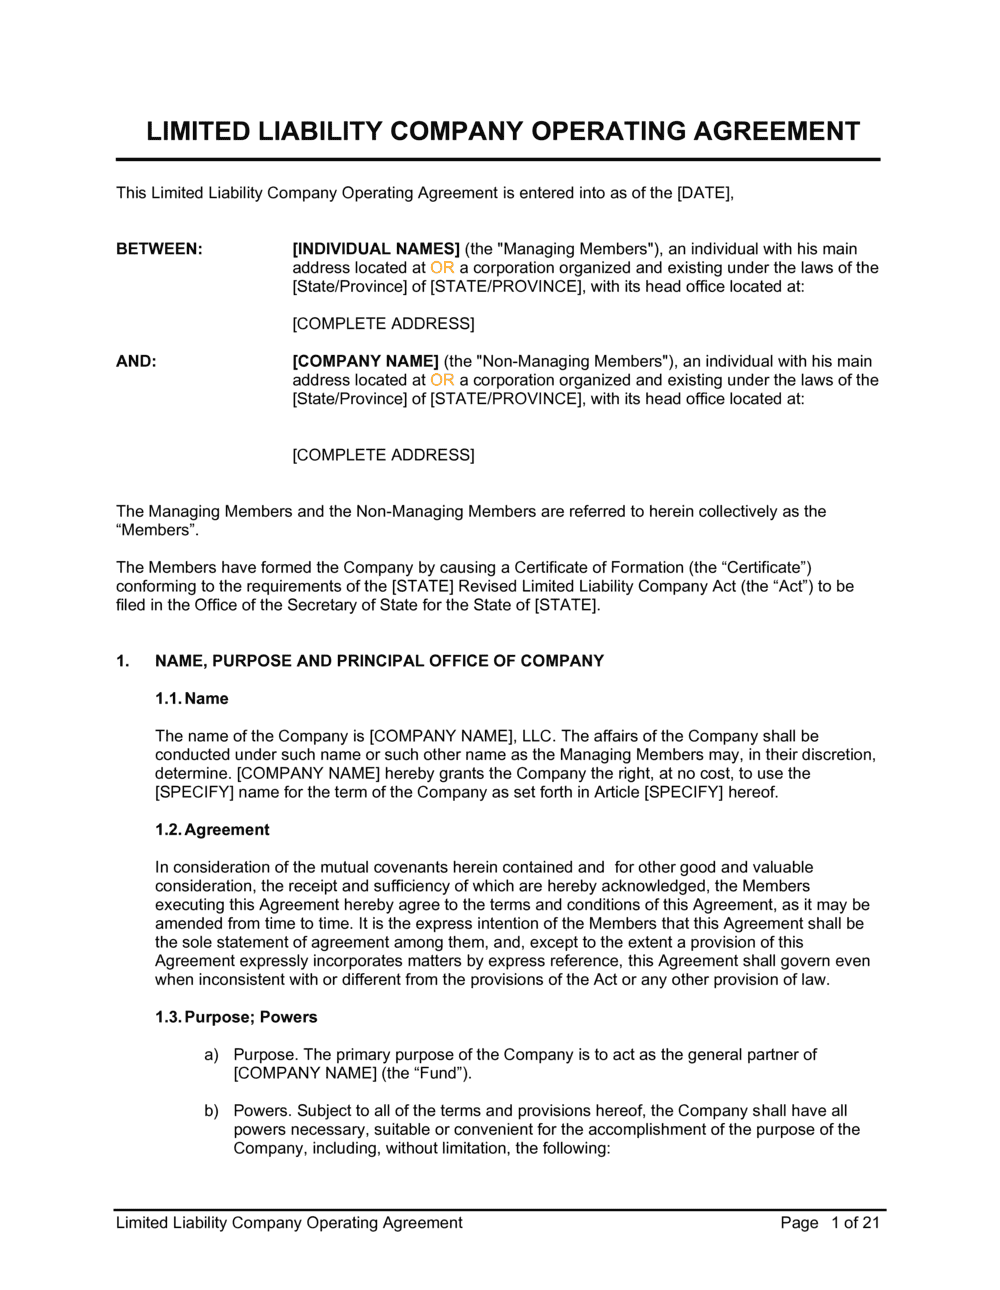 Business-in-a-Box's LLC Operating Agreement Template